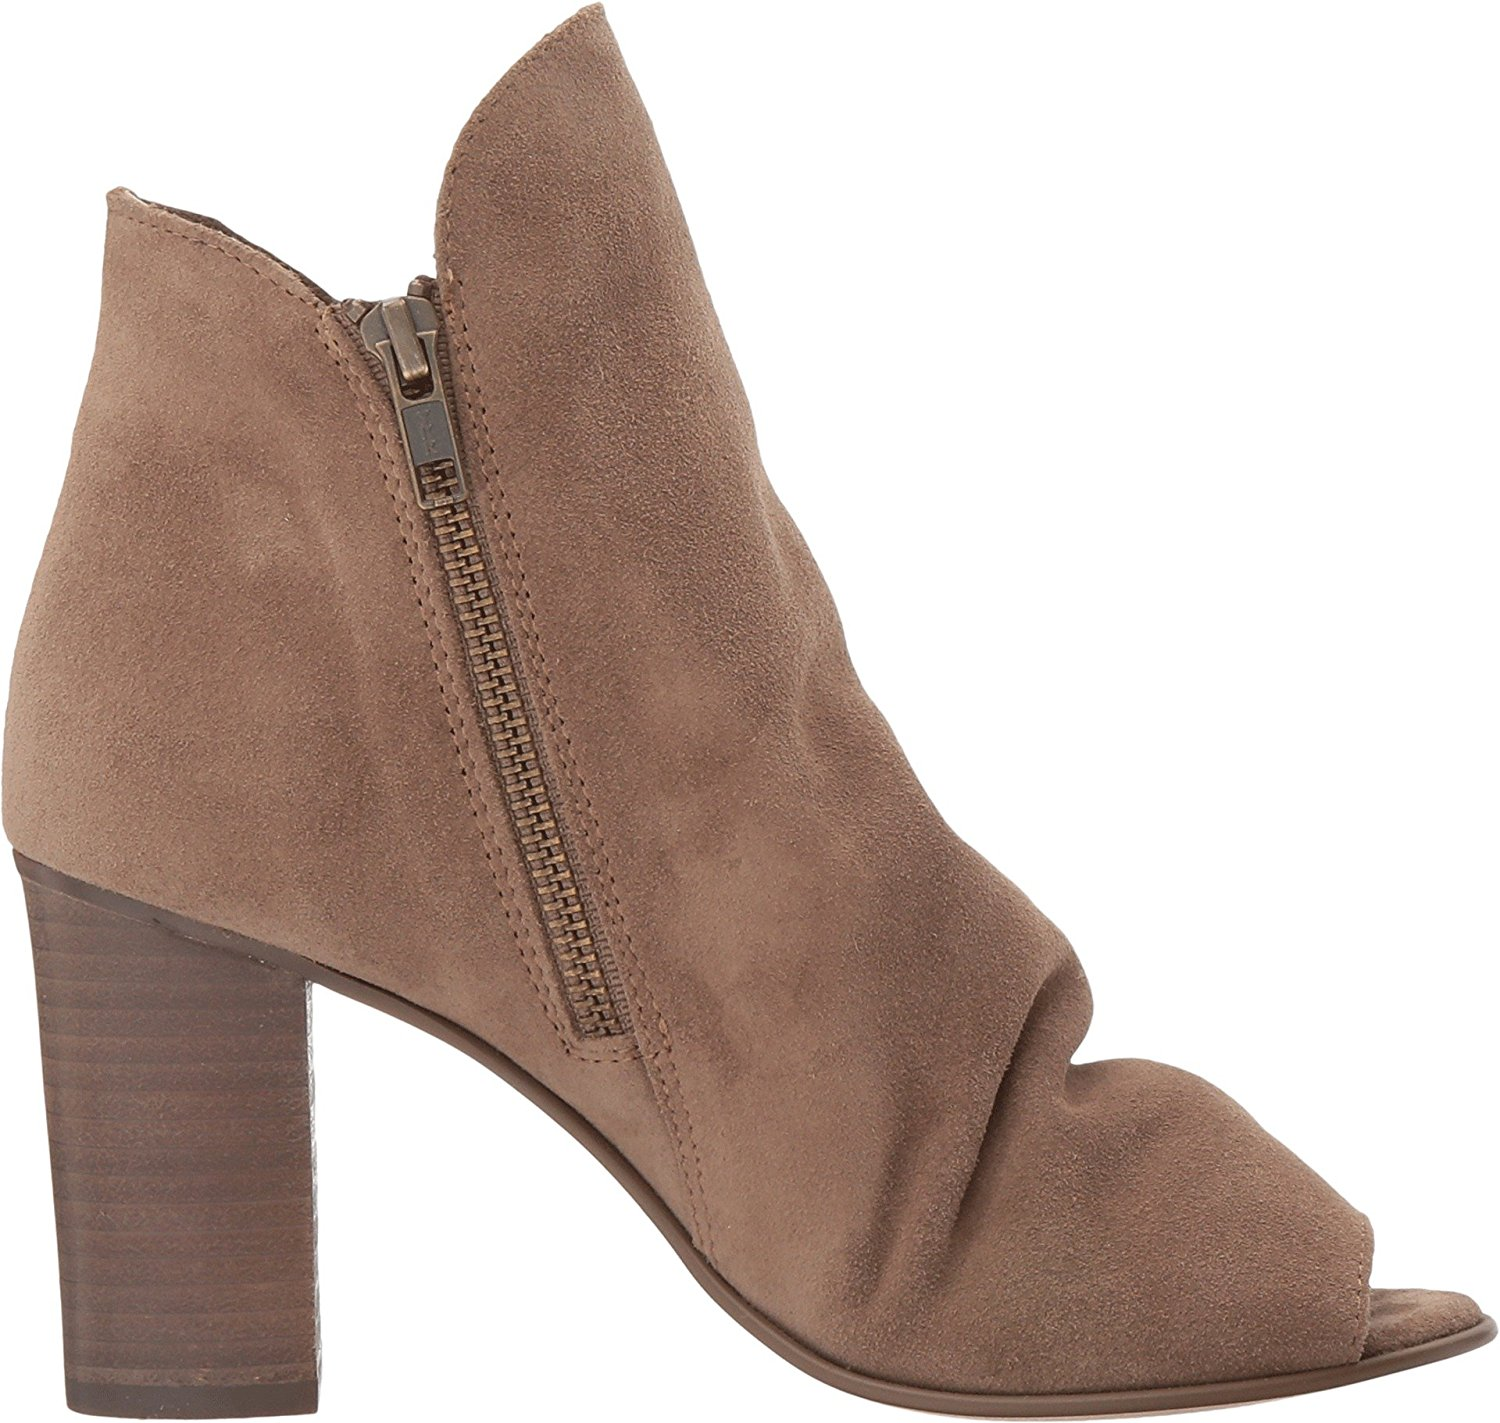 Steve Madden Womens Kyma, Taupe Suede, Size 9.0 ZUeQ